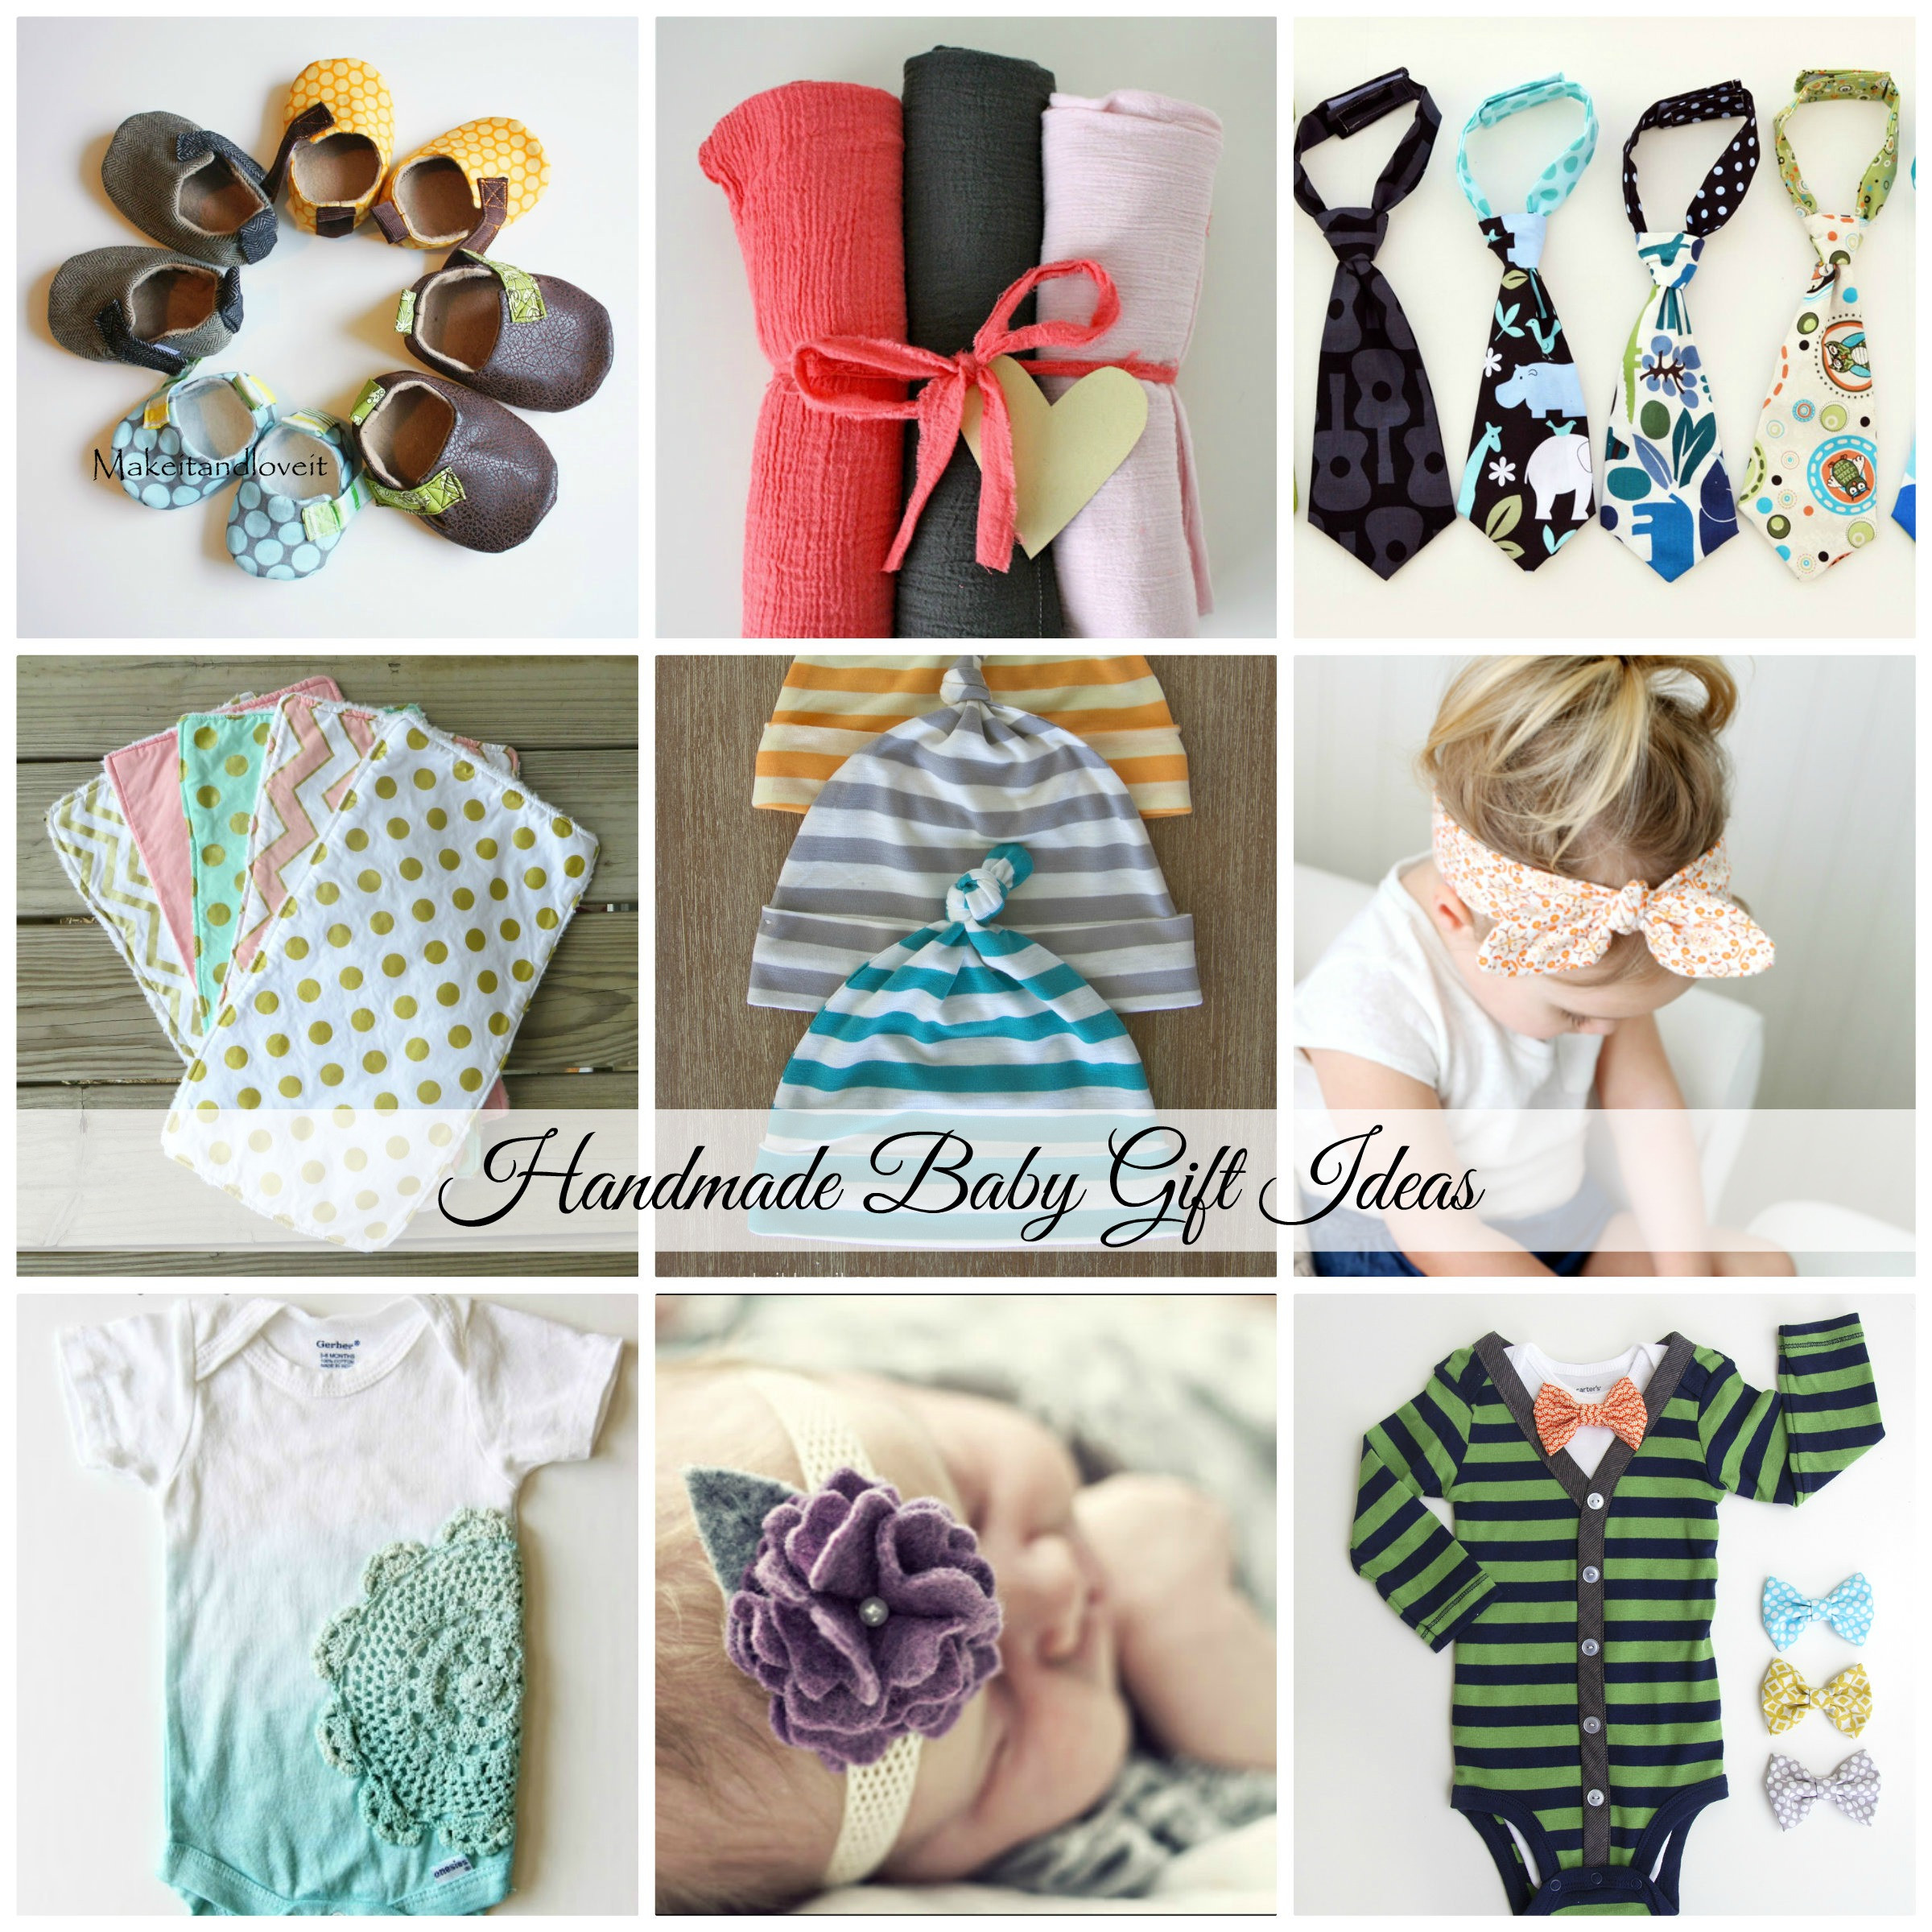 Best ideas about Newborn Baby Gift Ideas . Save or Pin Handmade Baby Gift Ideas Now.